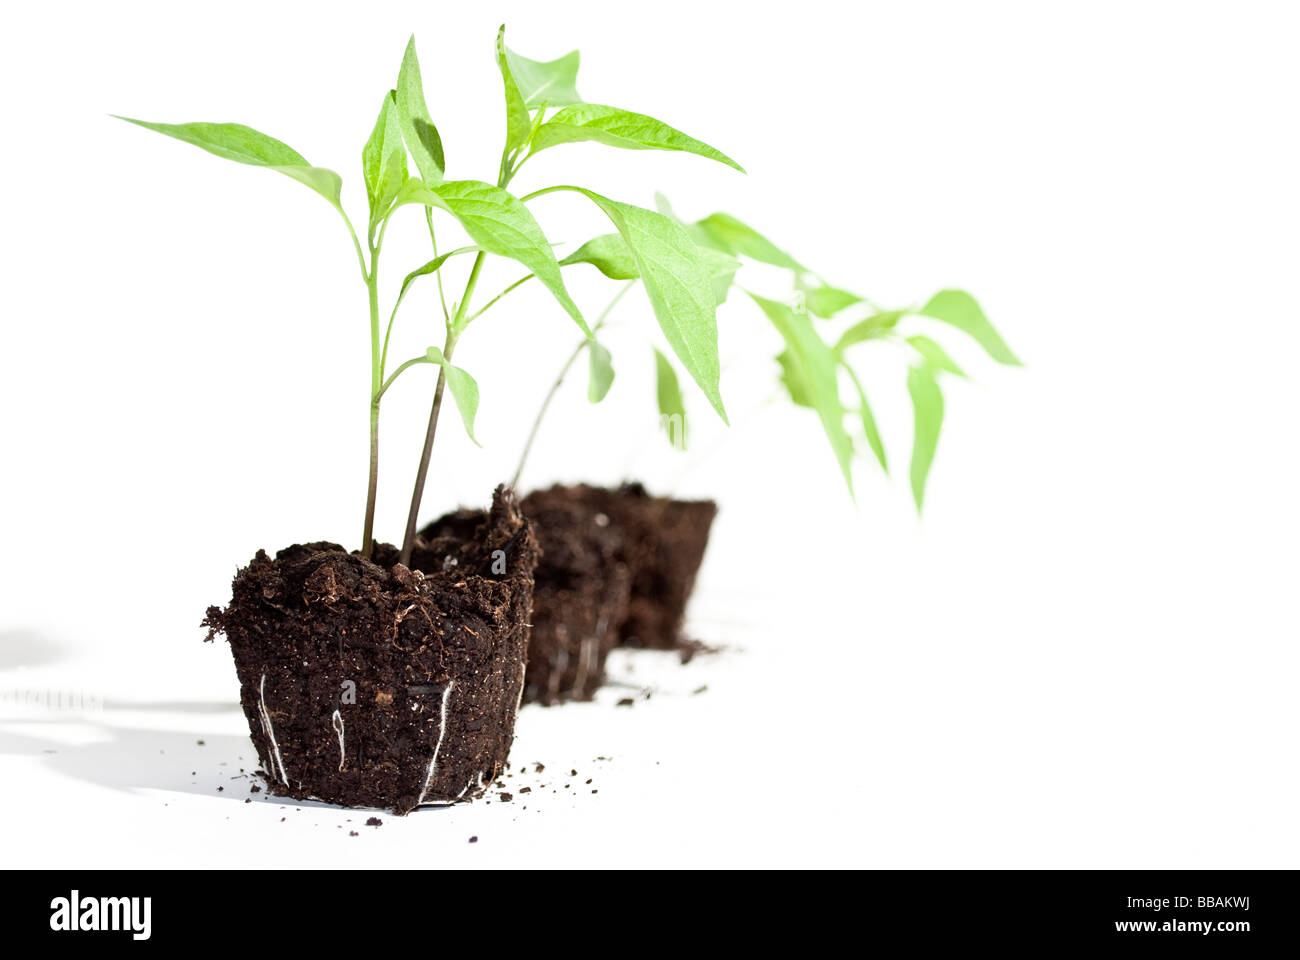 young chili plants isolated but still in soil - Stock Image